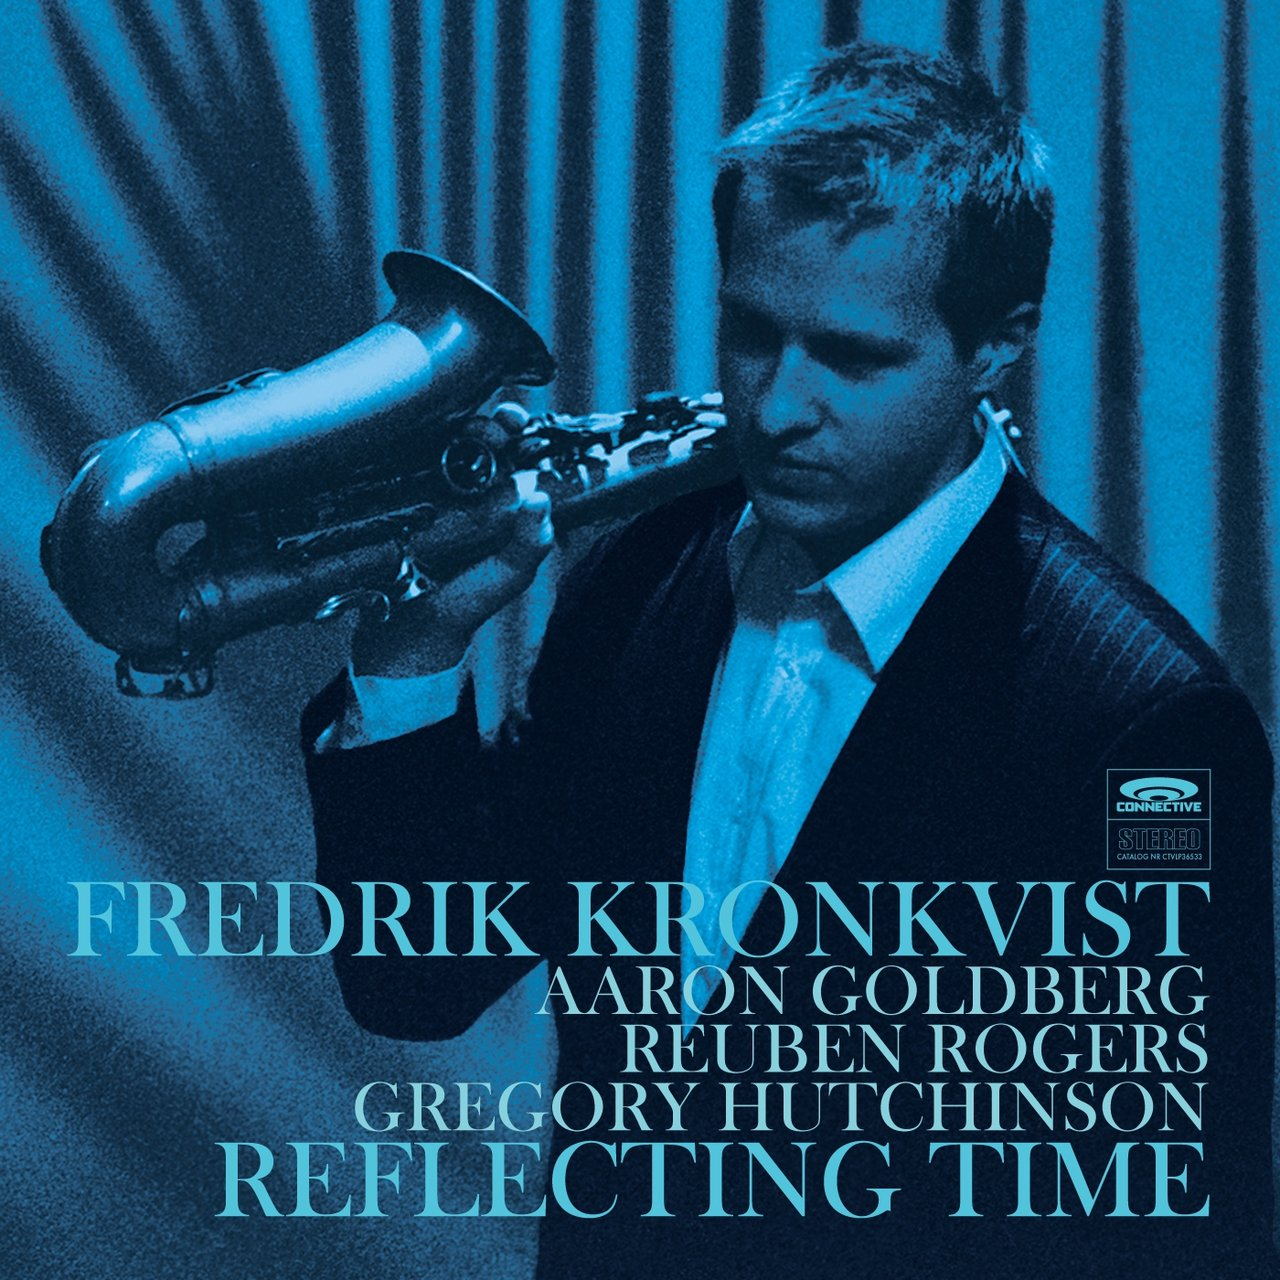 Reflecting Time (feat. Aaron Goldberg, Reuben Rogers & Gregory Hutchinson)